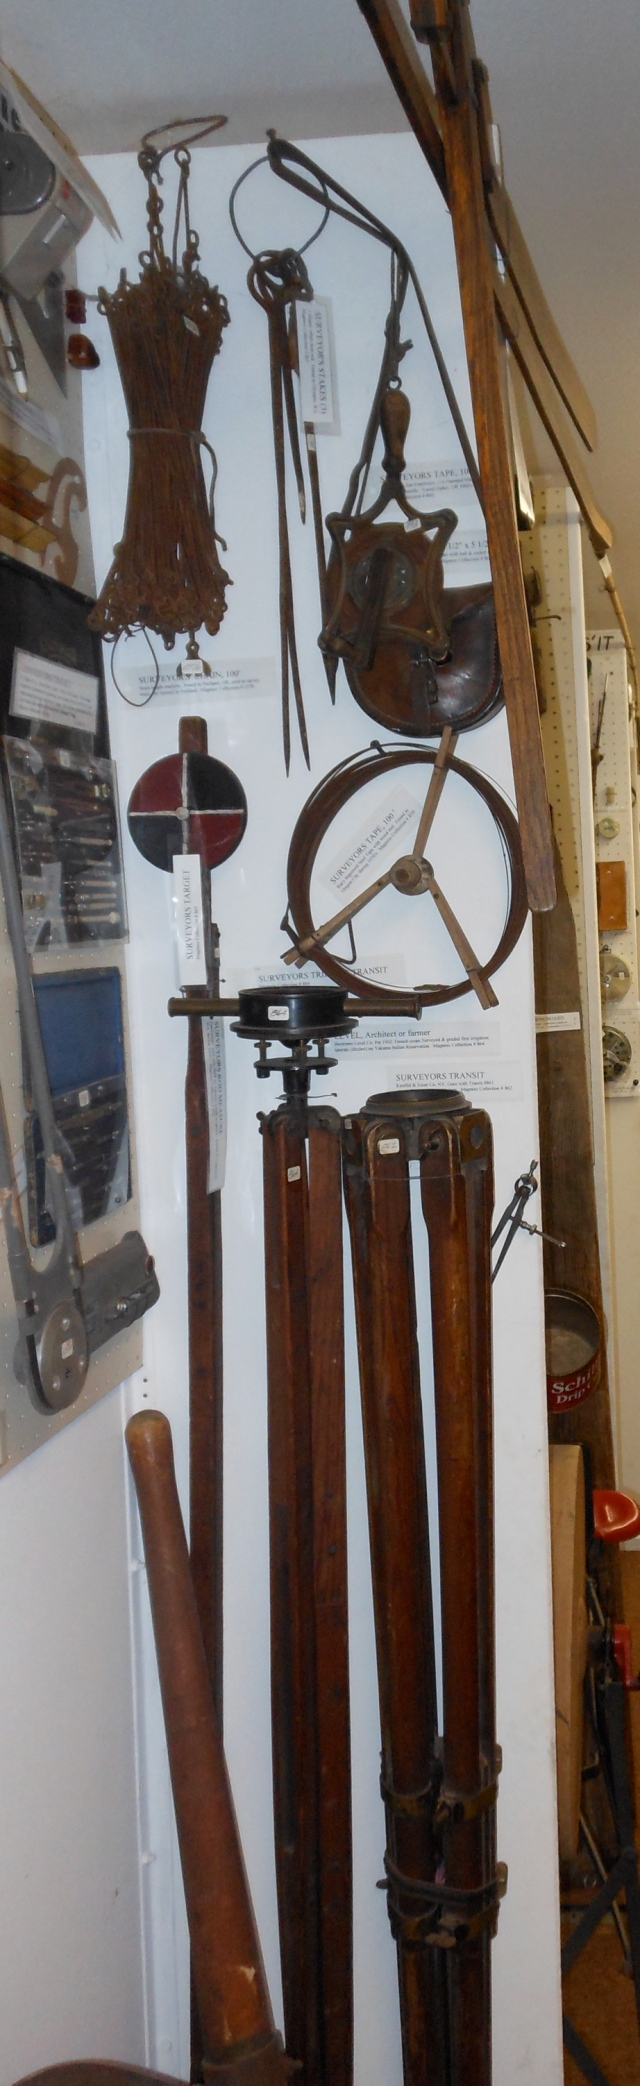 Old surveyors equipment